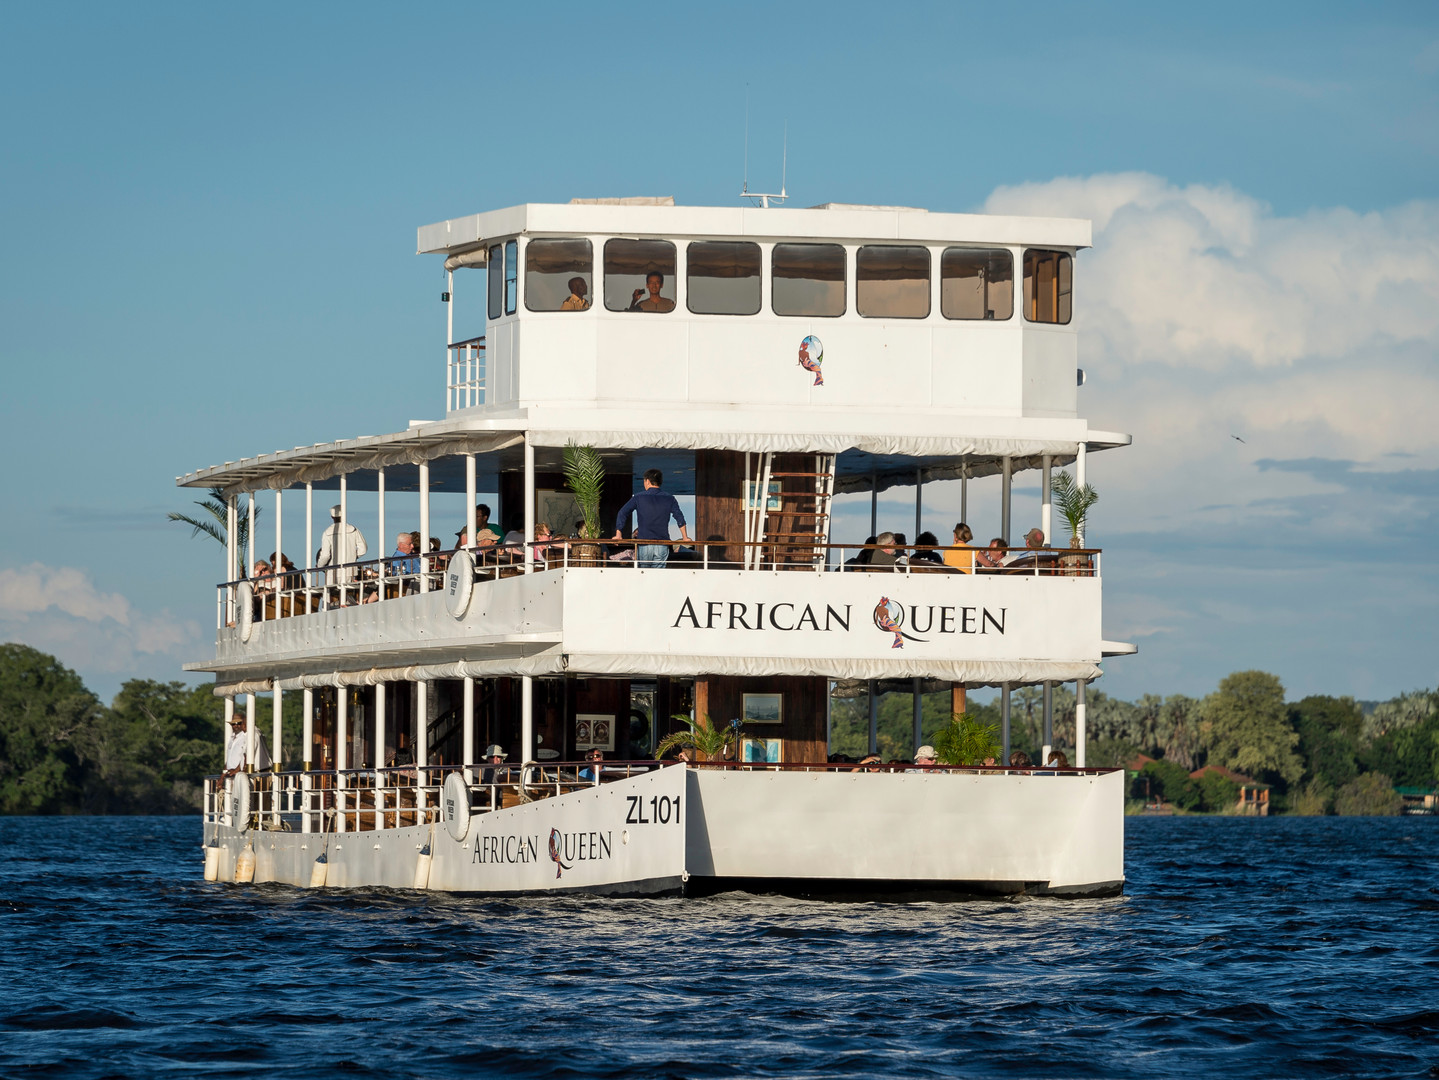 The Ultimate River Cruise